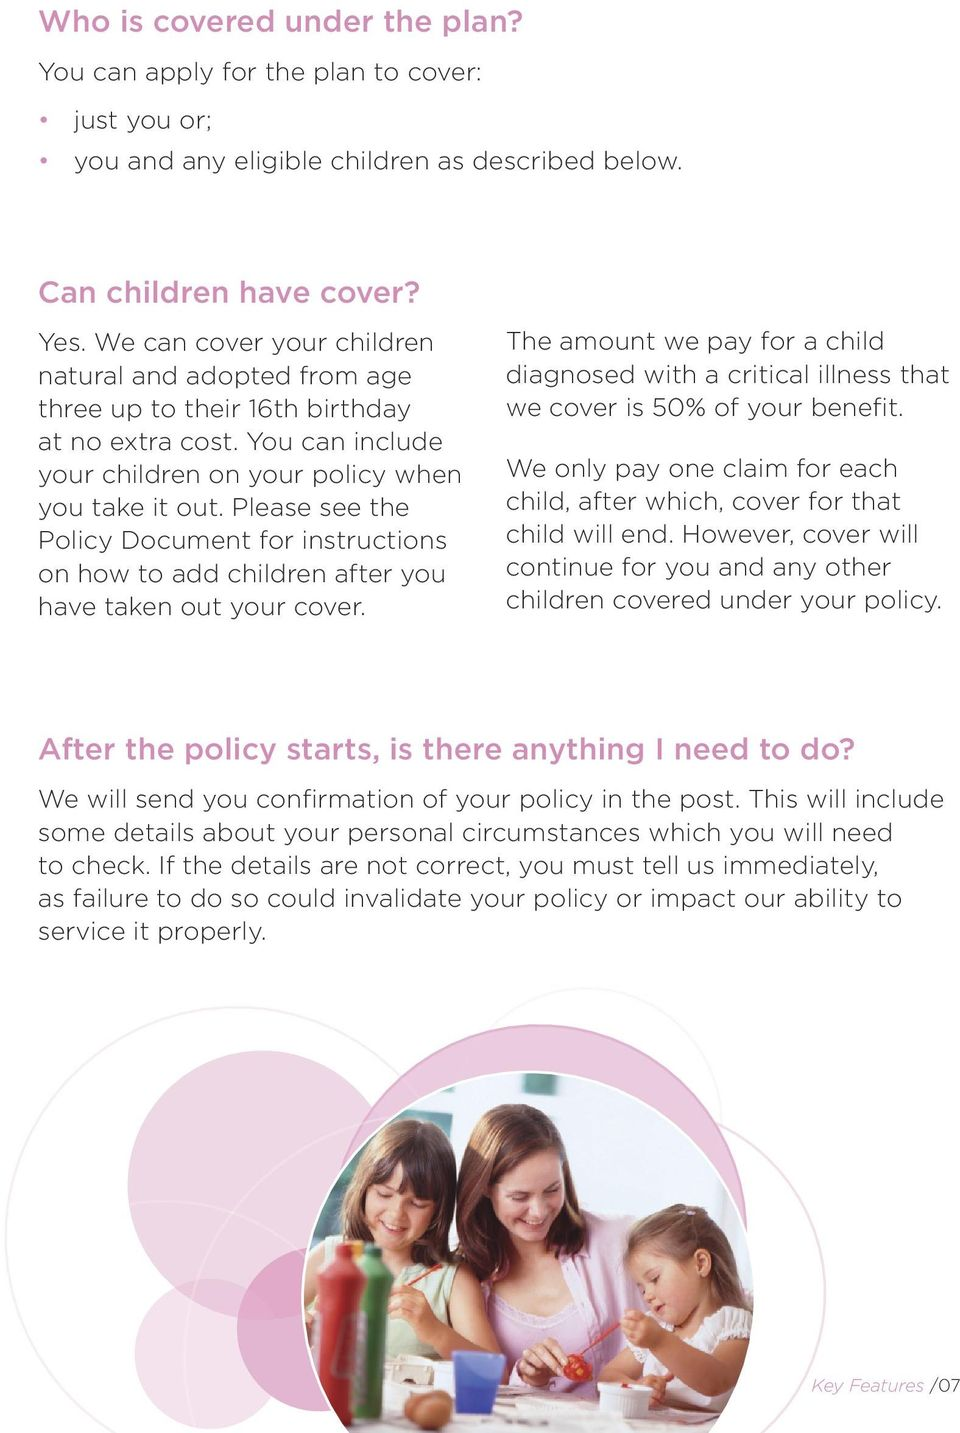 Please see the Policy Document for instructions on how to add children after you have taken out your cover.